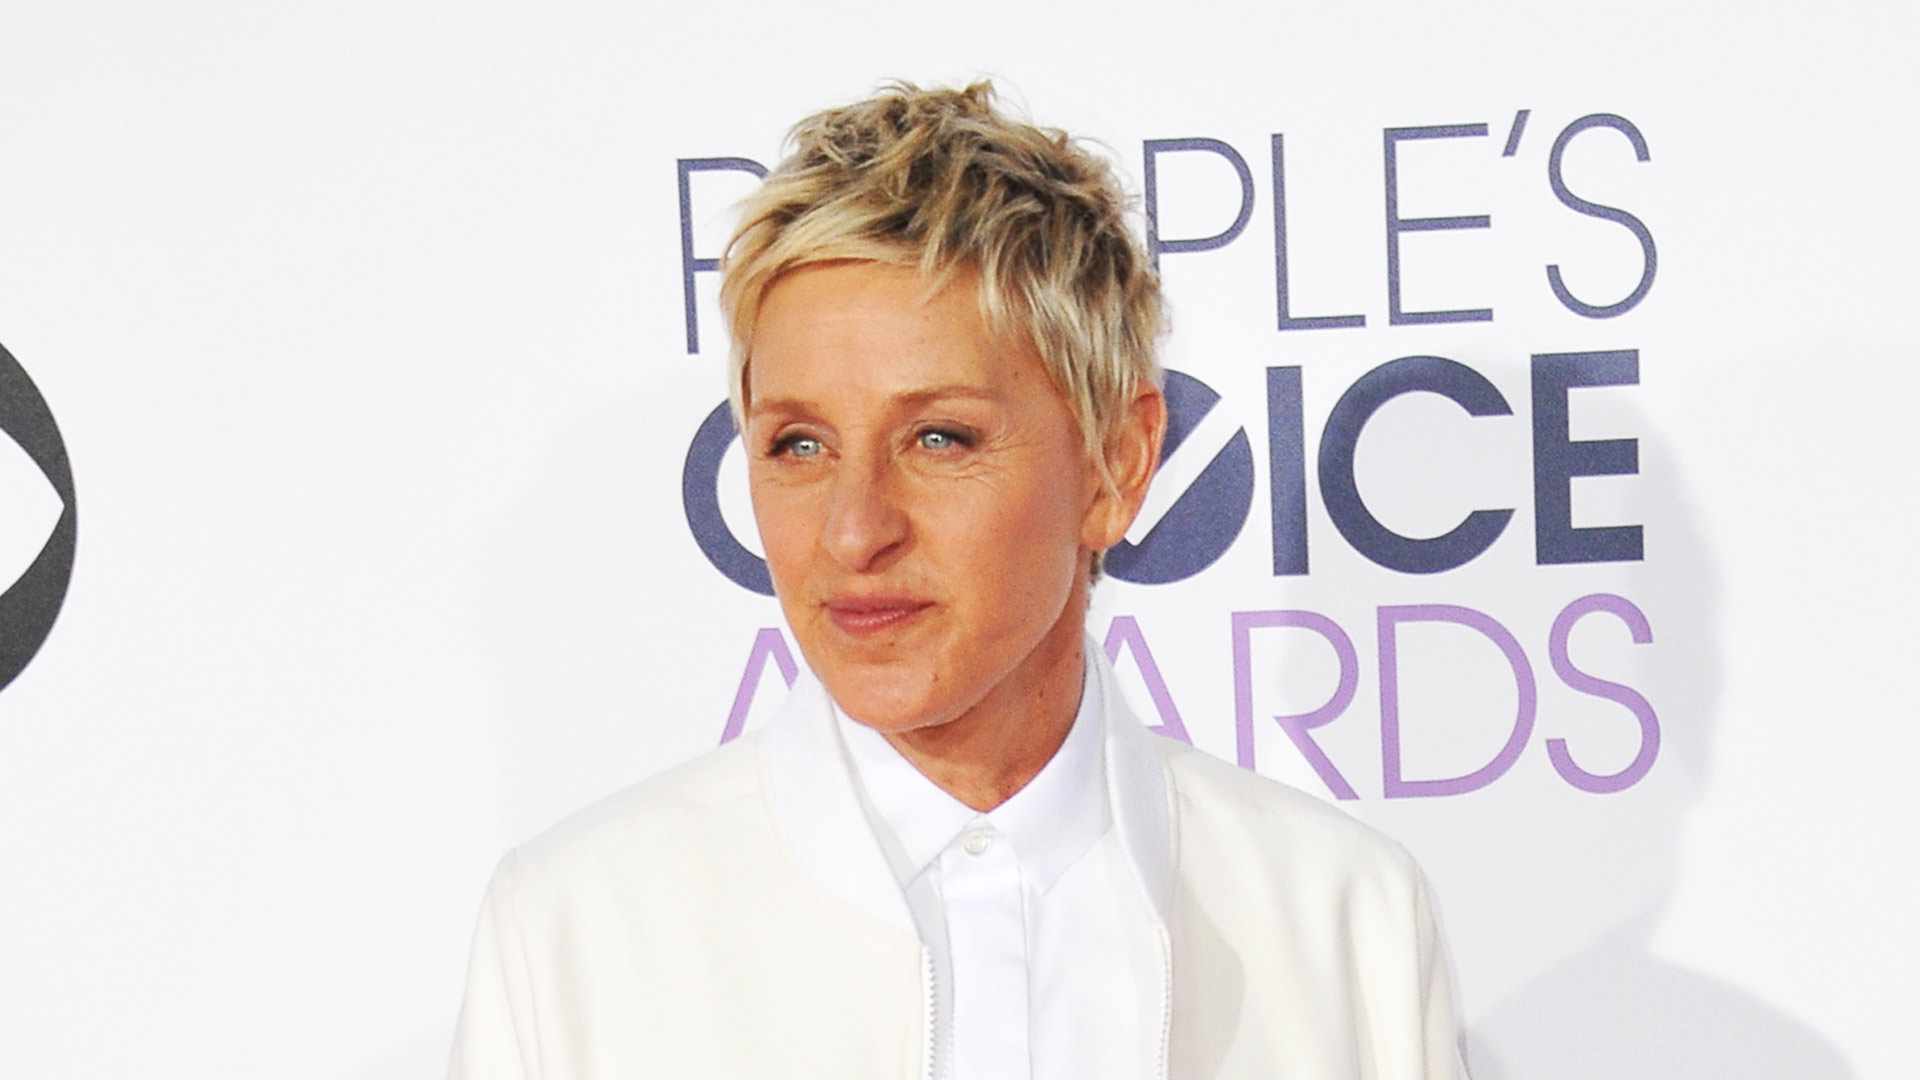 bd7bc422 Ellen DeGeneres' Net Worth on Her 60th Birthday | GOBankingRates